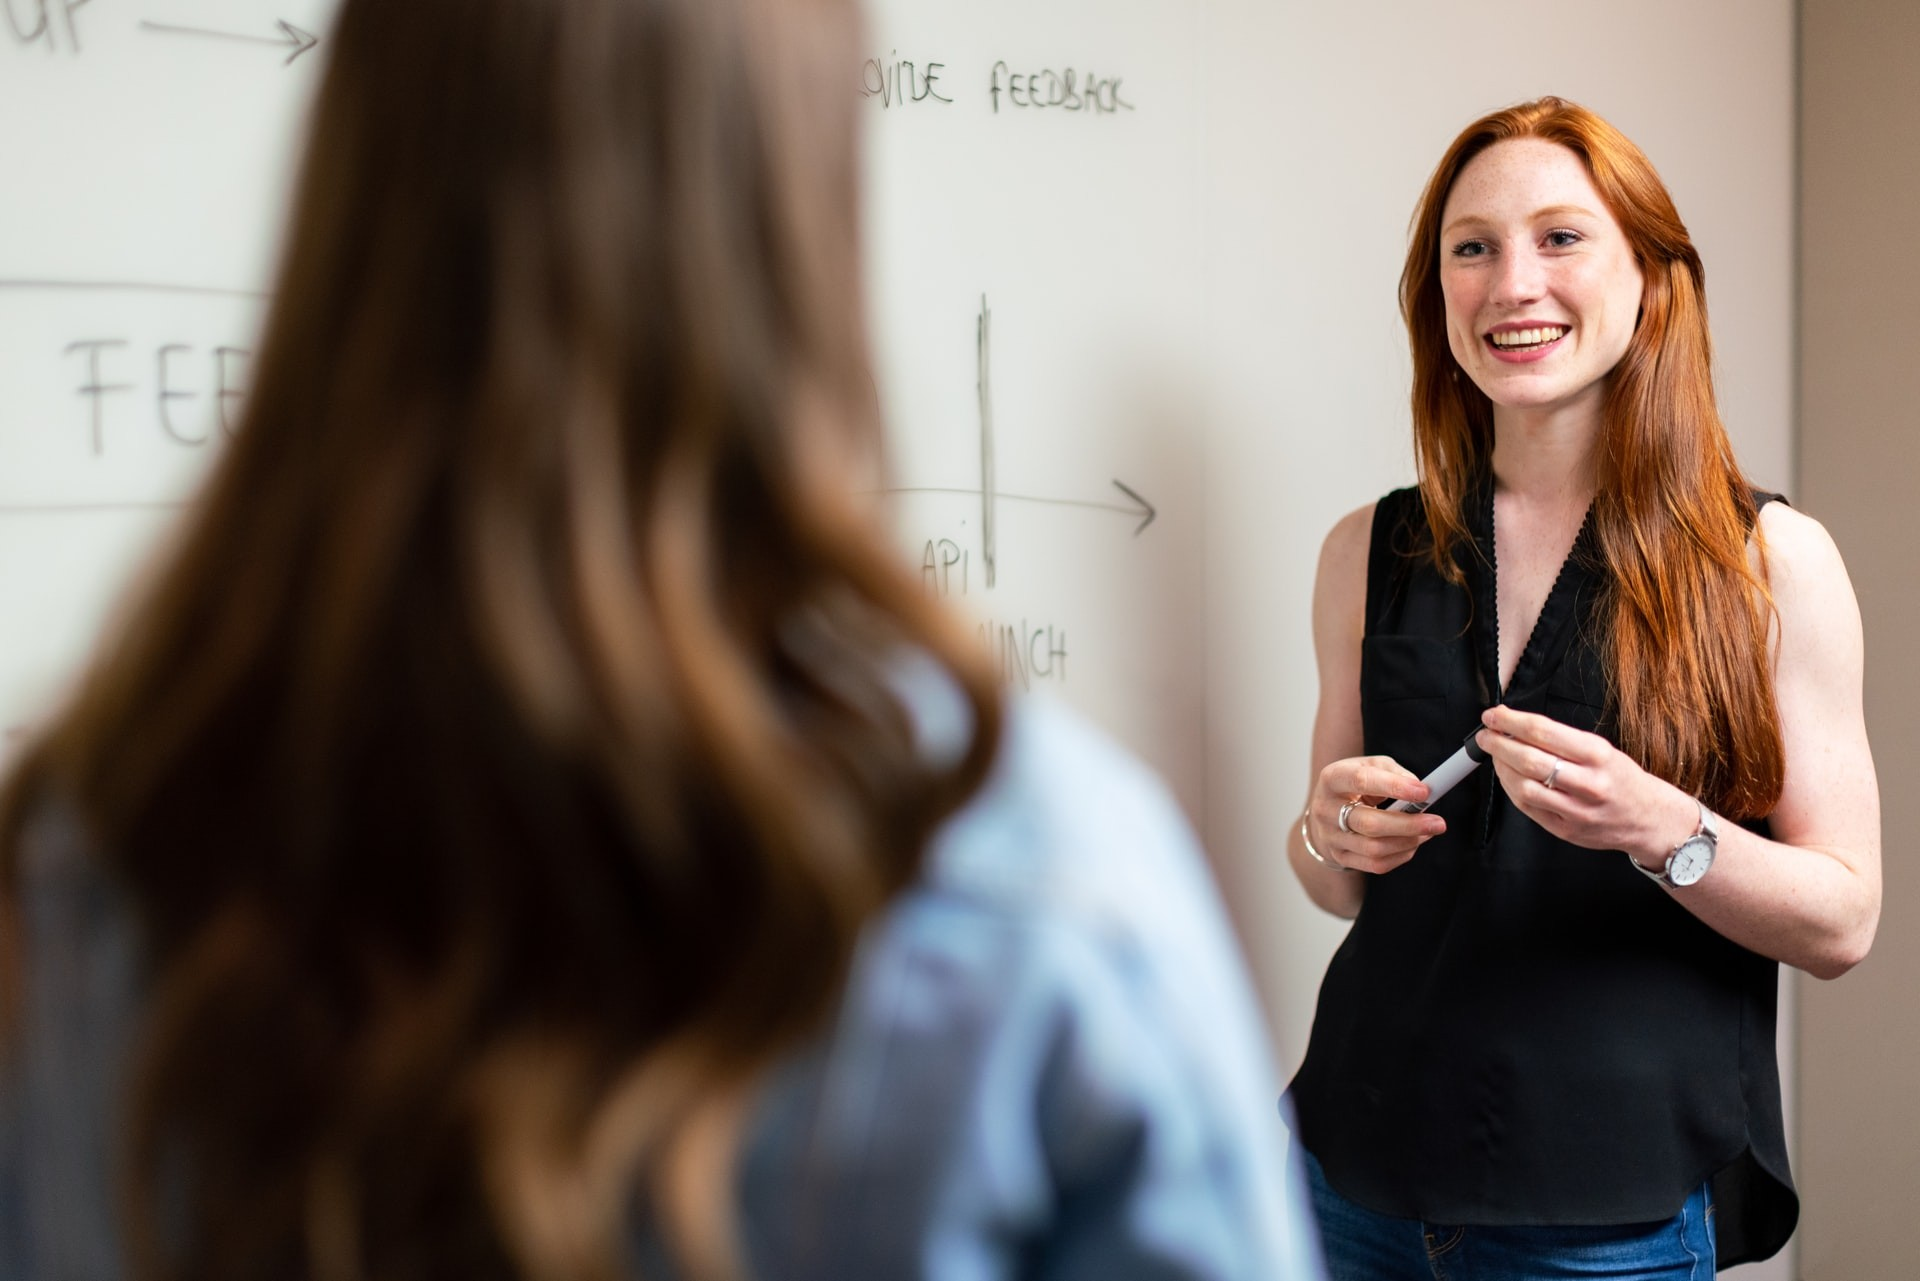 A teacher talks to a student while standing in front of a whiteboard.